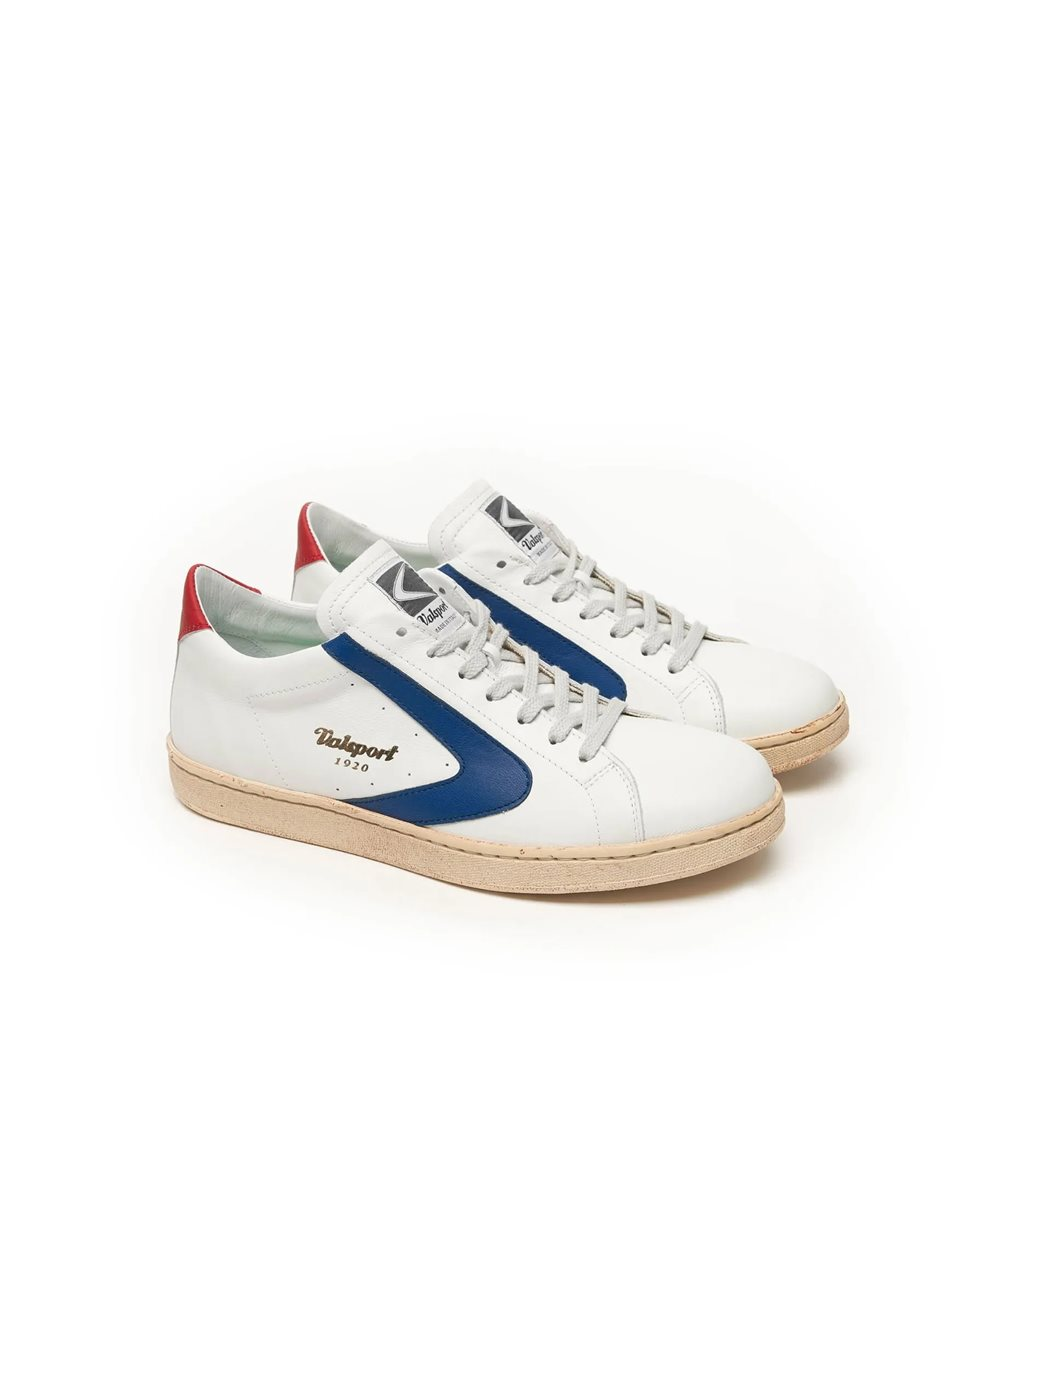 VALSPORT 1920 Tournament 00701 SNEAKERS